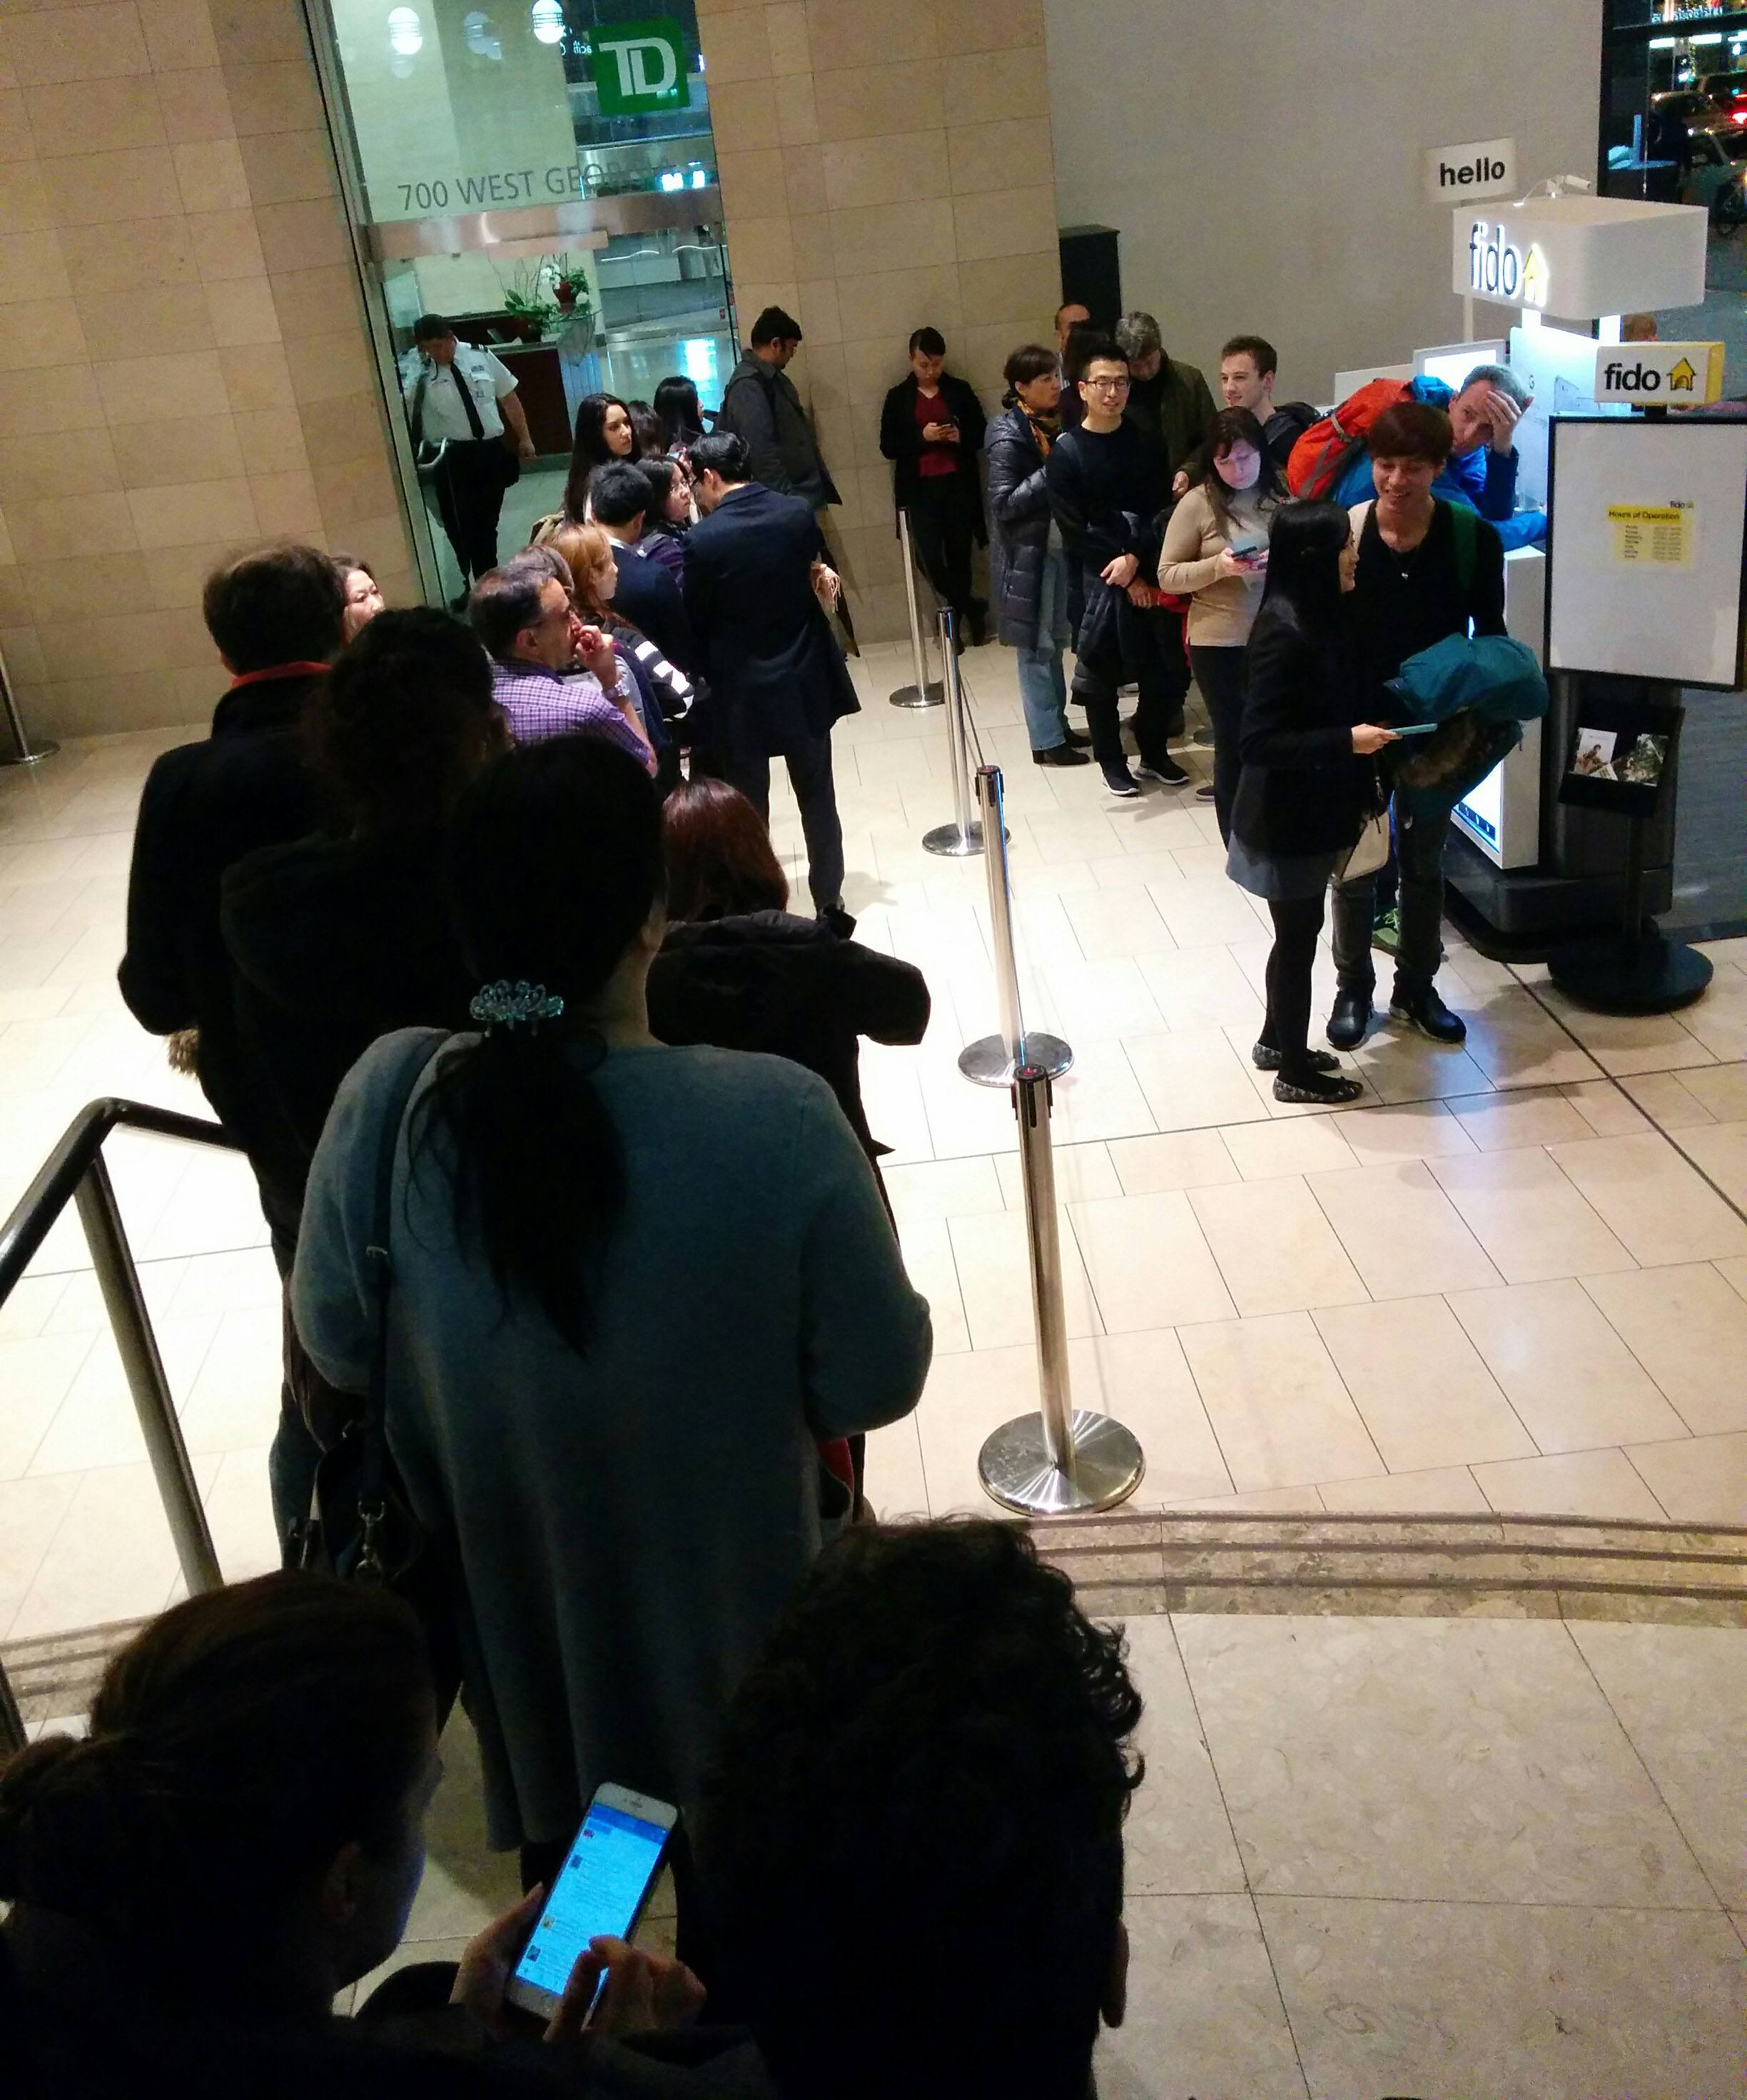 Lineup at Fido in downtown Vancouver on Monday night (Jenni Sheppard/Daily Hive)